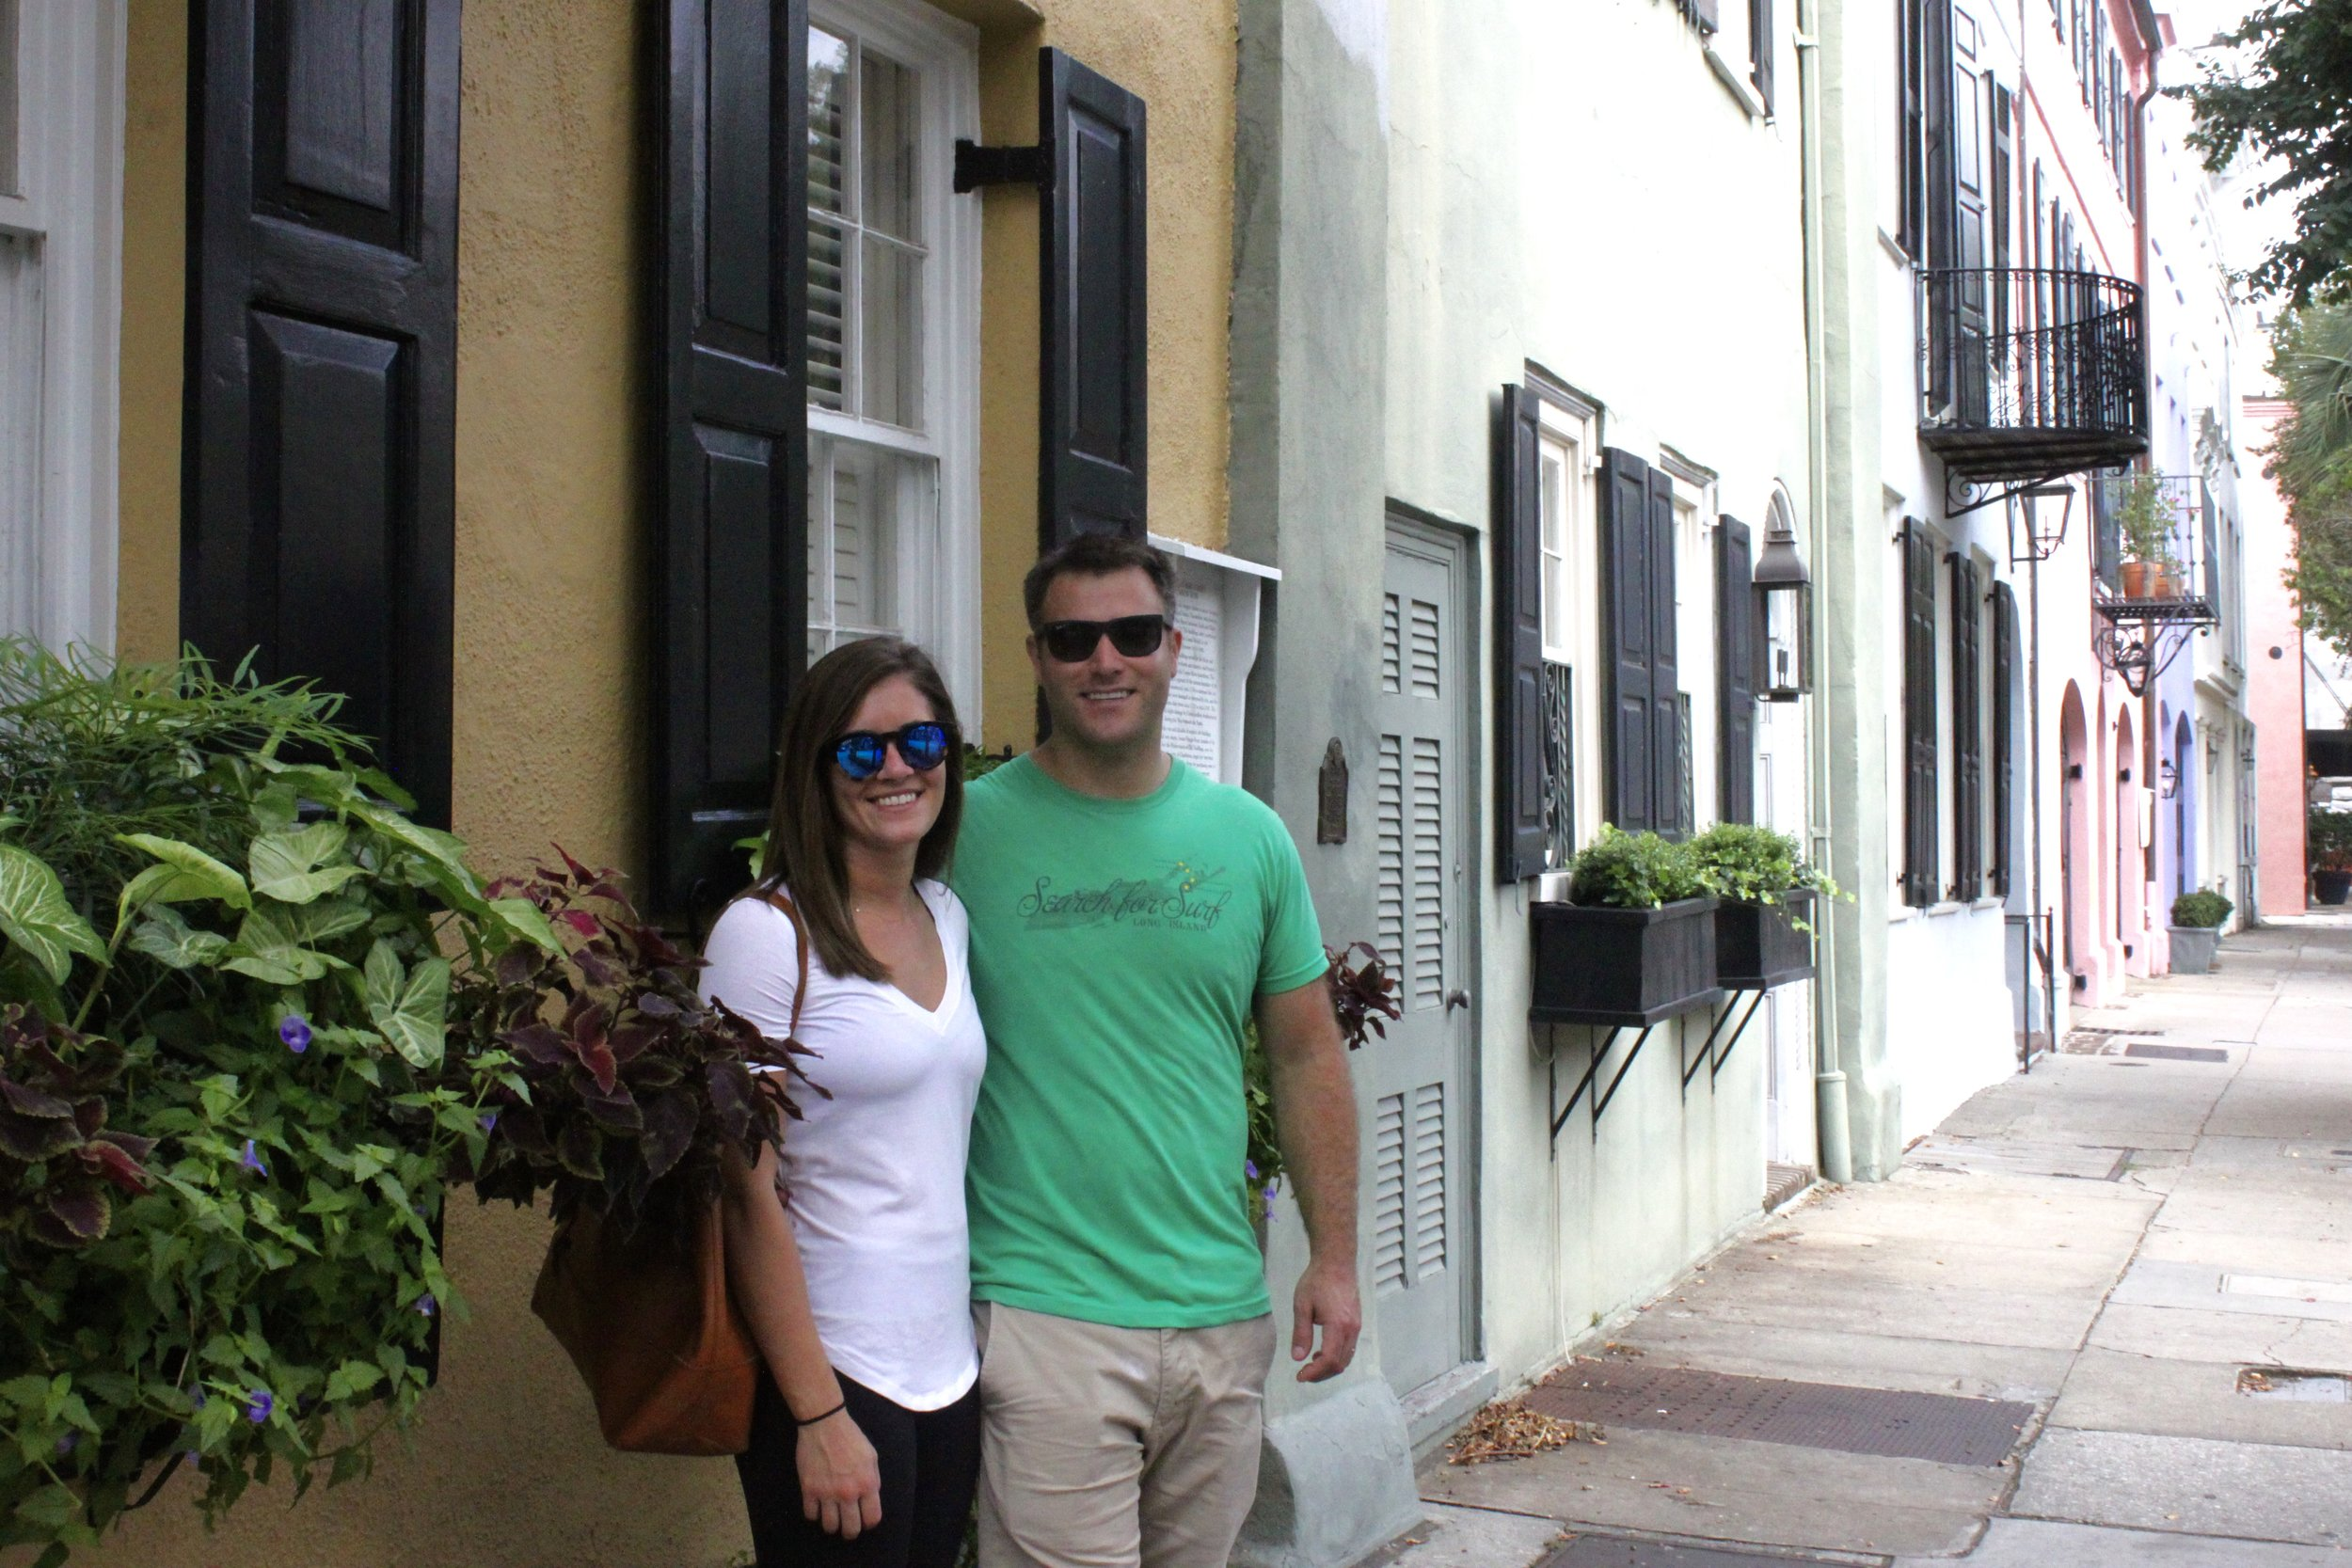 Happy One Year Anniversary to Mark & Jess visiting Charleston from Boston to celebrate. This is their first trip to the Holy City. With a few days ahead of them, lots of fun and good food awaits them.  Thank you both! Happy Anniversary!